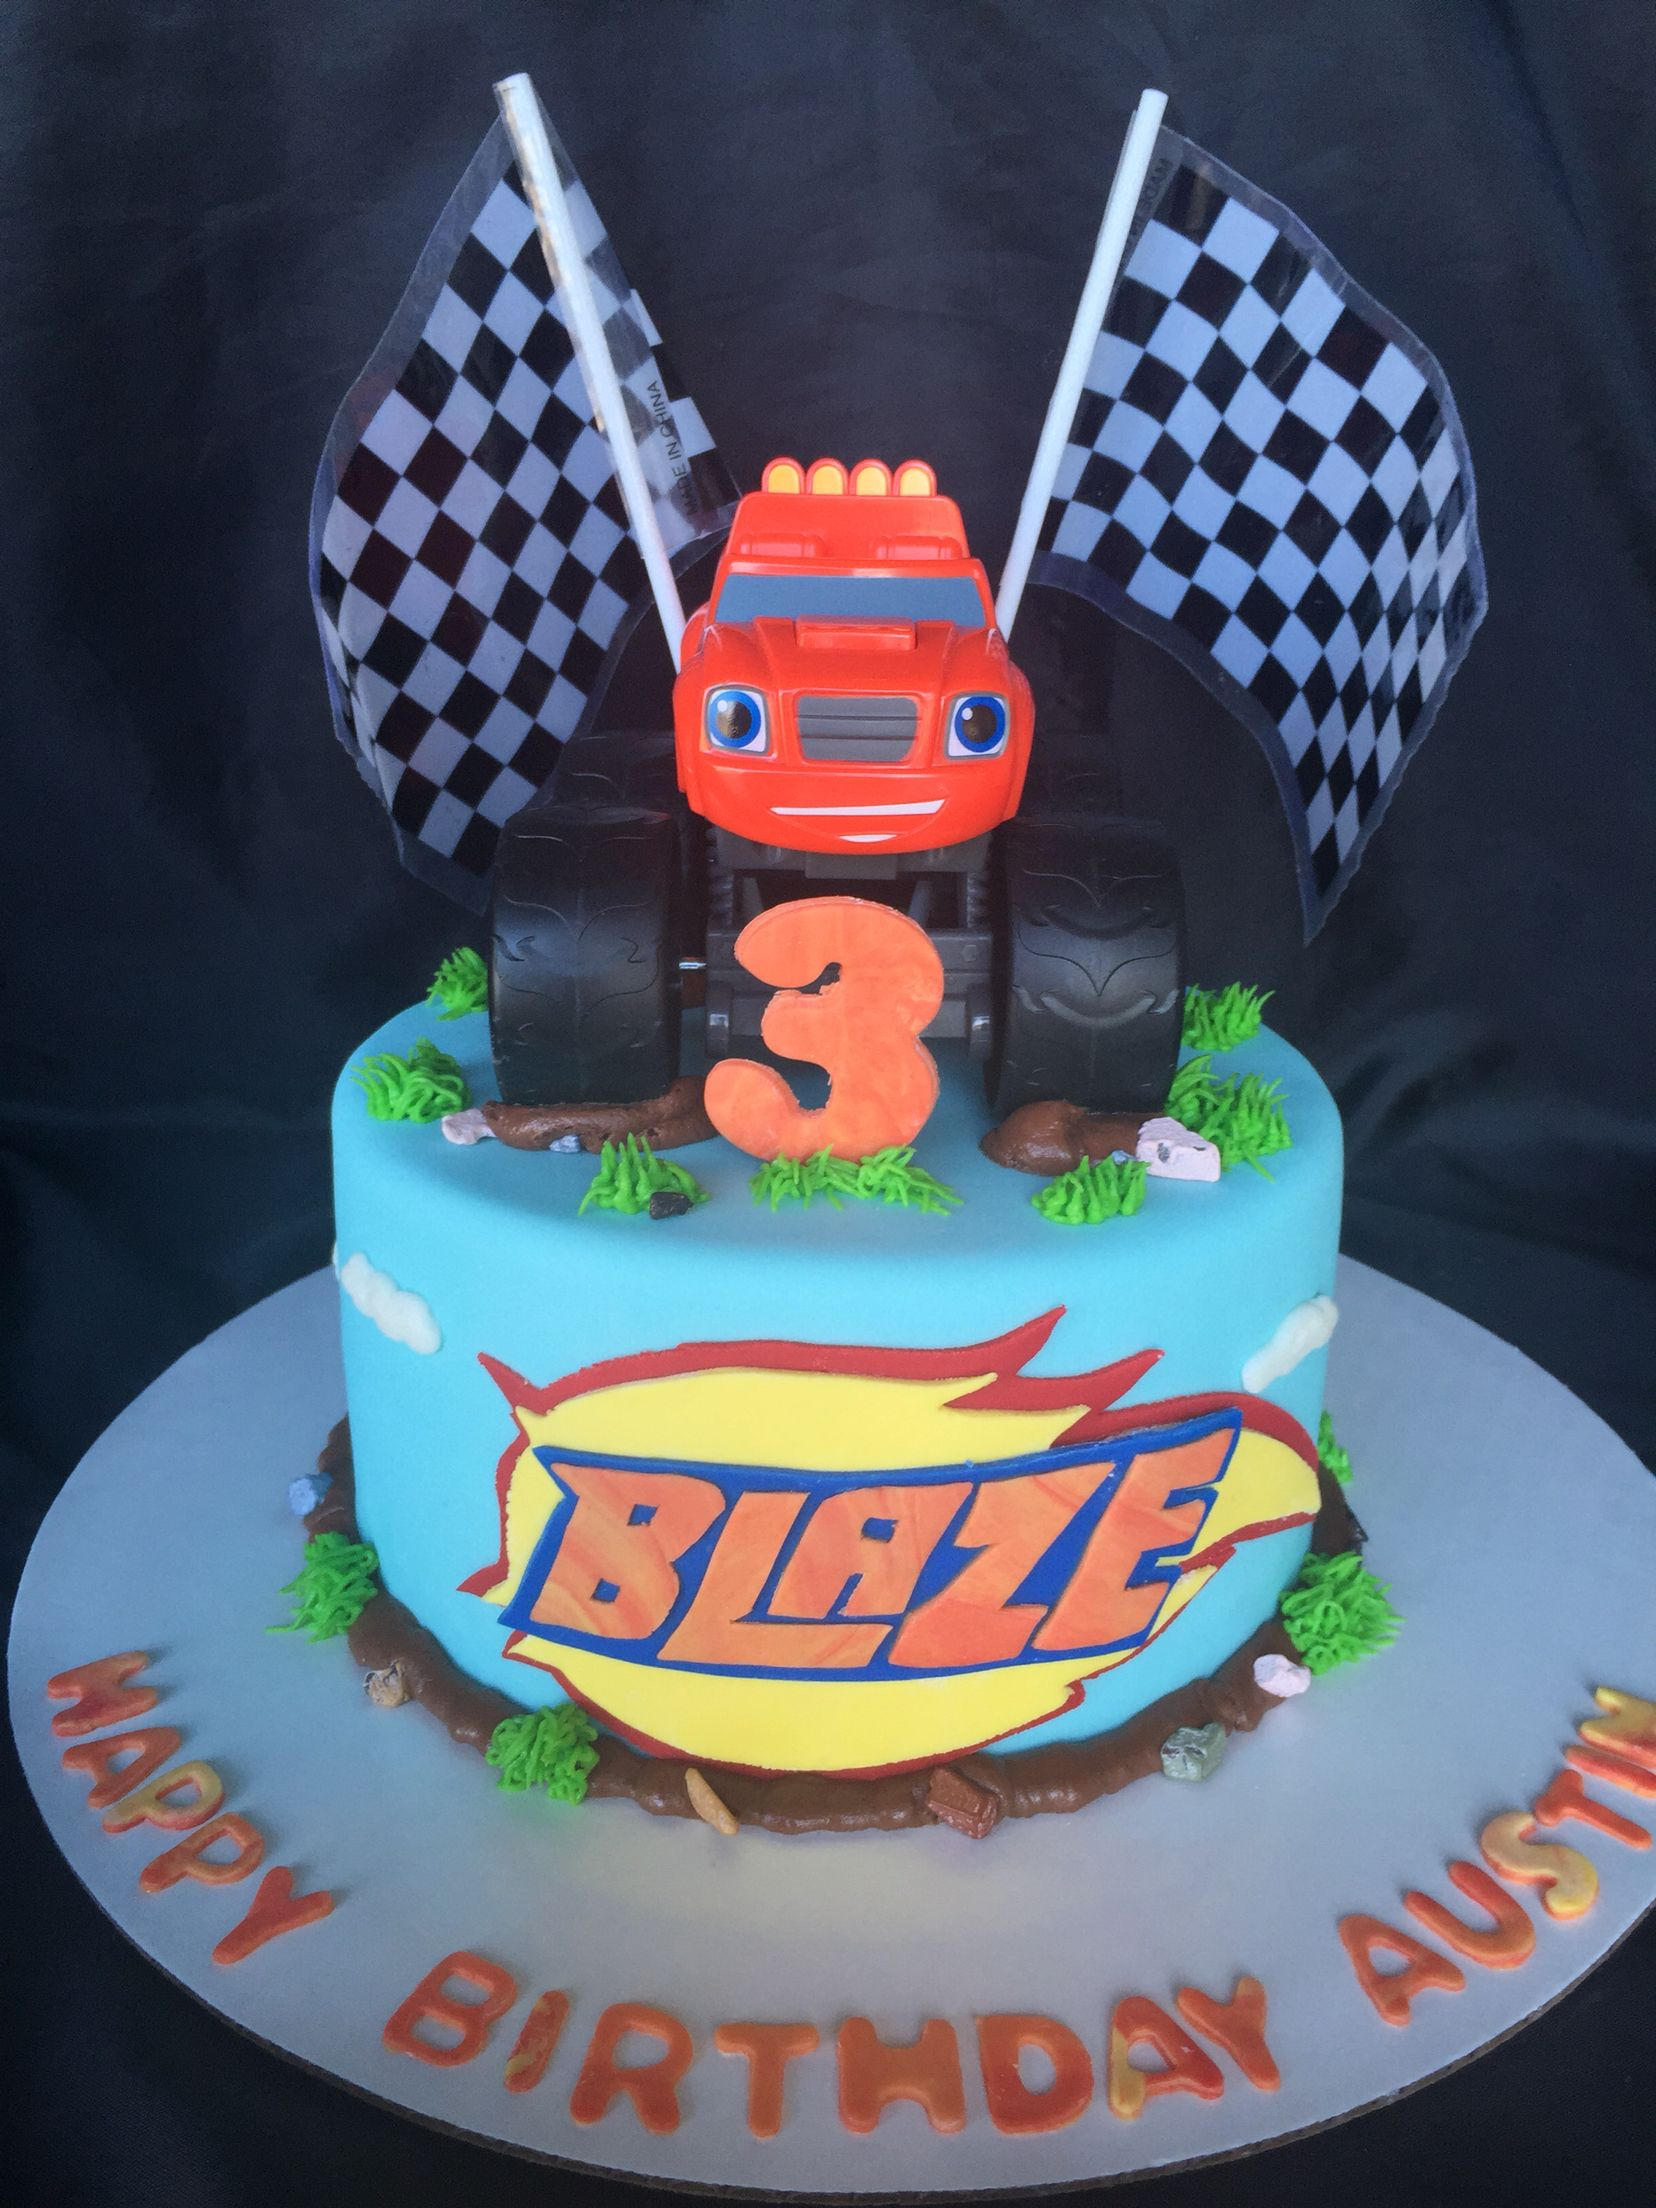 Blaze and the monster machines cake | Cakes | Blaze cakes, Blaze